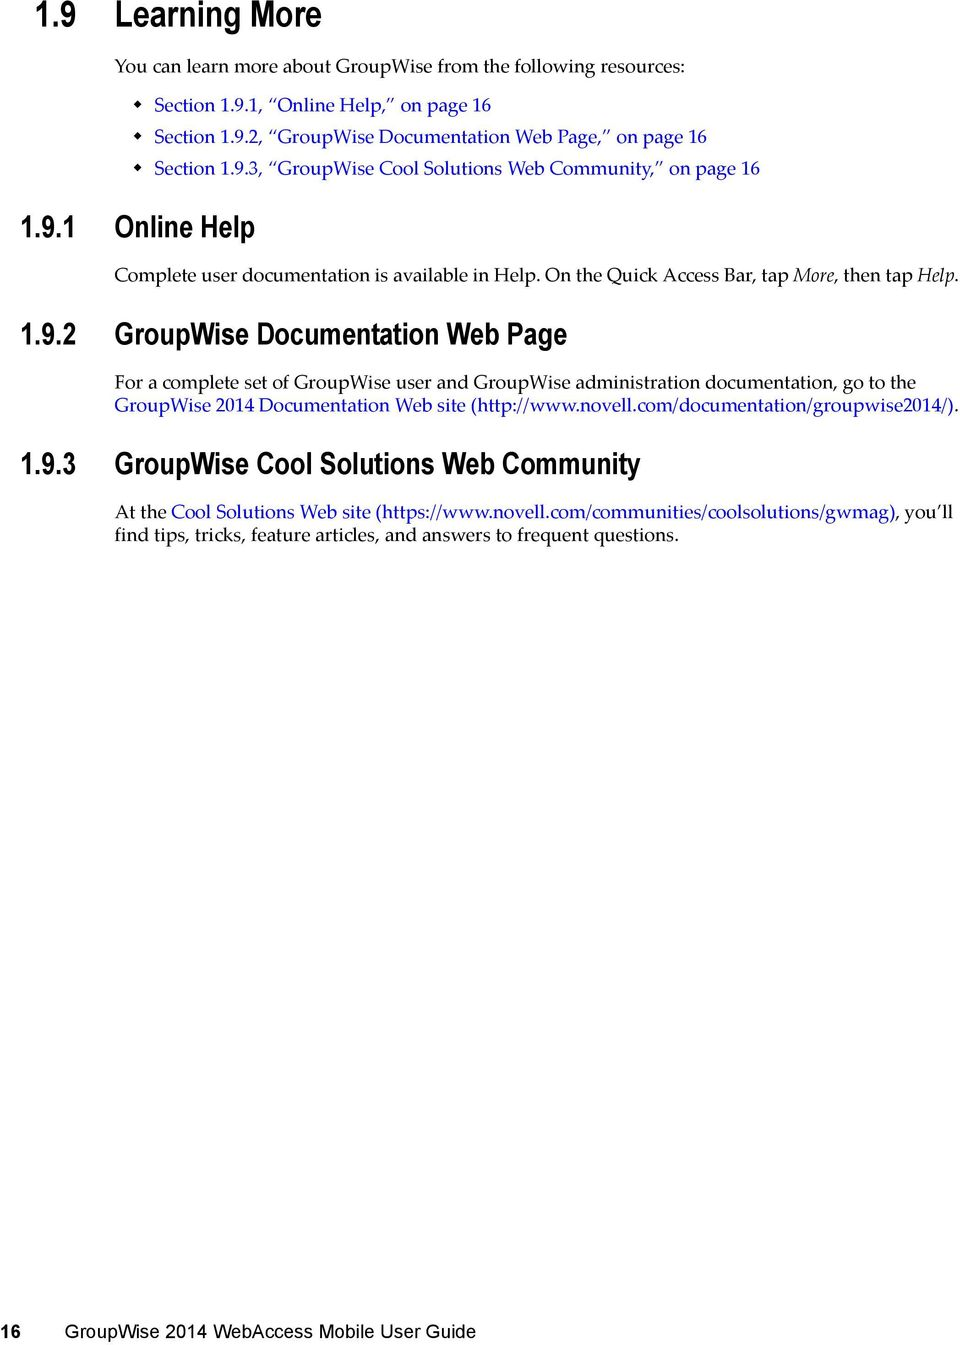 novell.com/documentation/groupwise2014/). 1.9.3 GroupWise Cool Solutions Web Community At the Cool Solutions Web site (https://www.novell.com/communities/coolsolutions/gwmag), you ll find tips, tricks, feature articles, and answers to frequent questions.